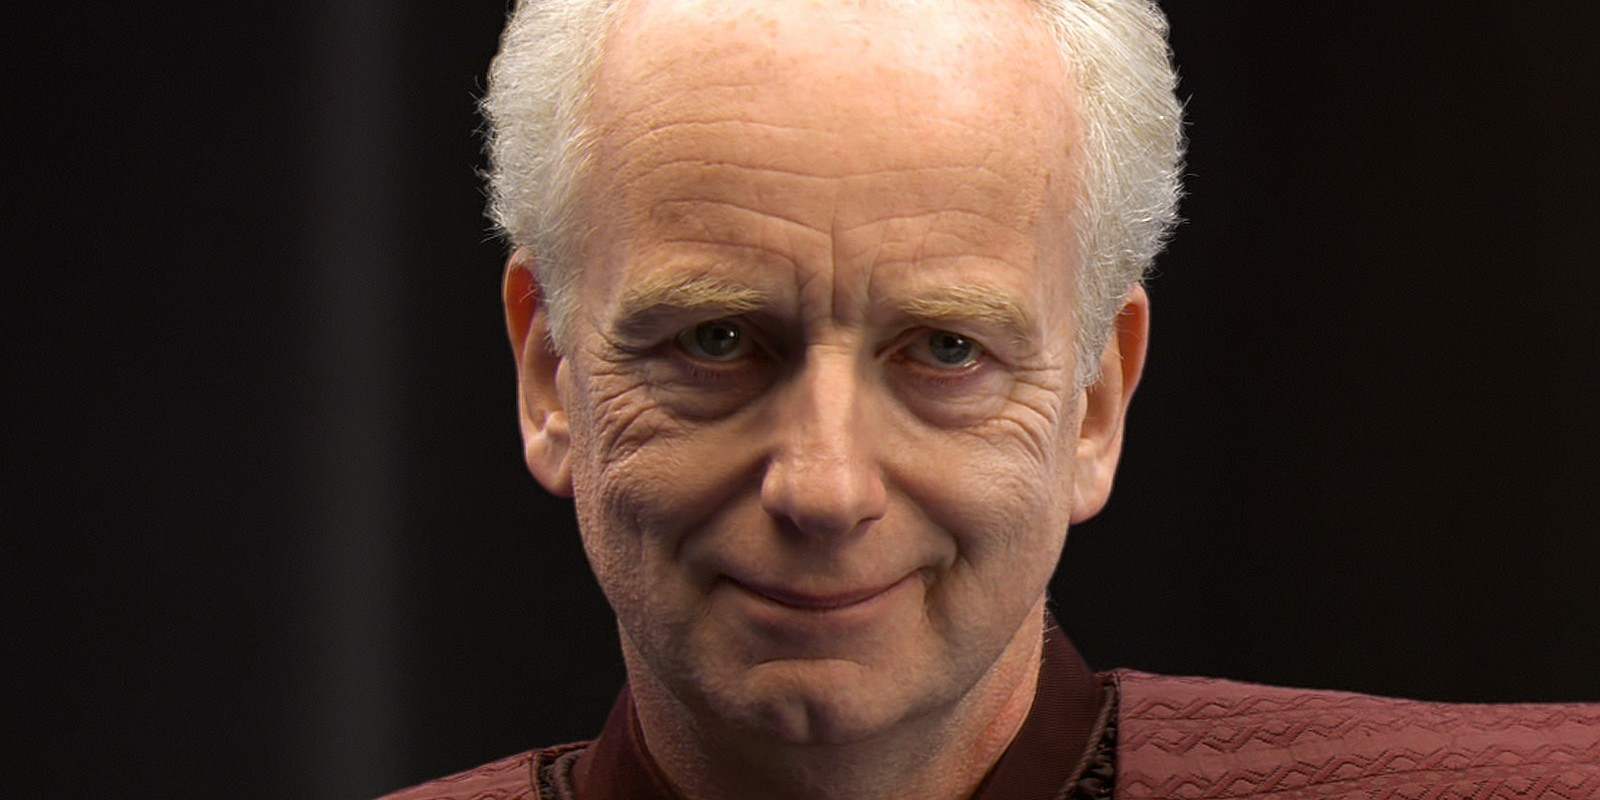 Ian McDiarmid as Palpatine Darth Sidious in Star Wars Episode III Revenge of the Sith | kesseljunkie.com